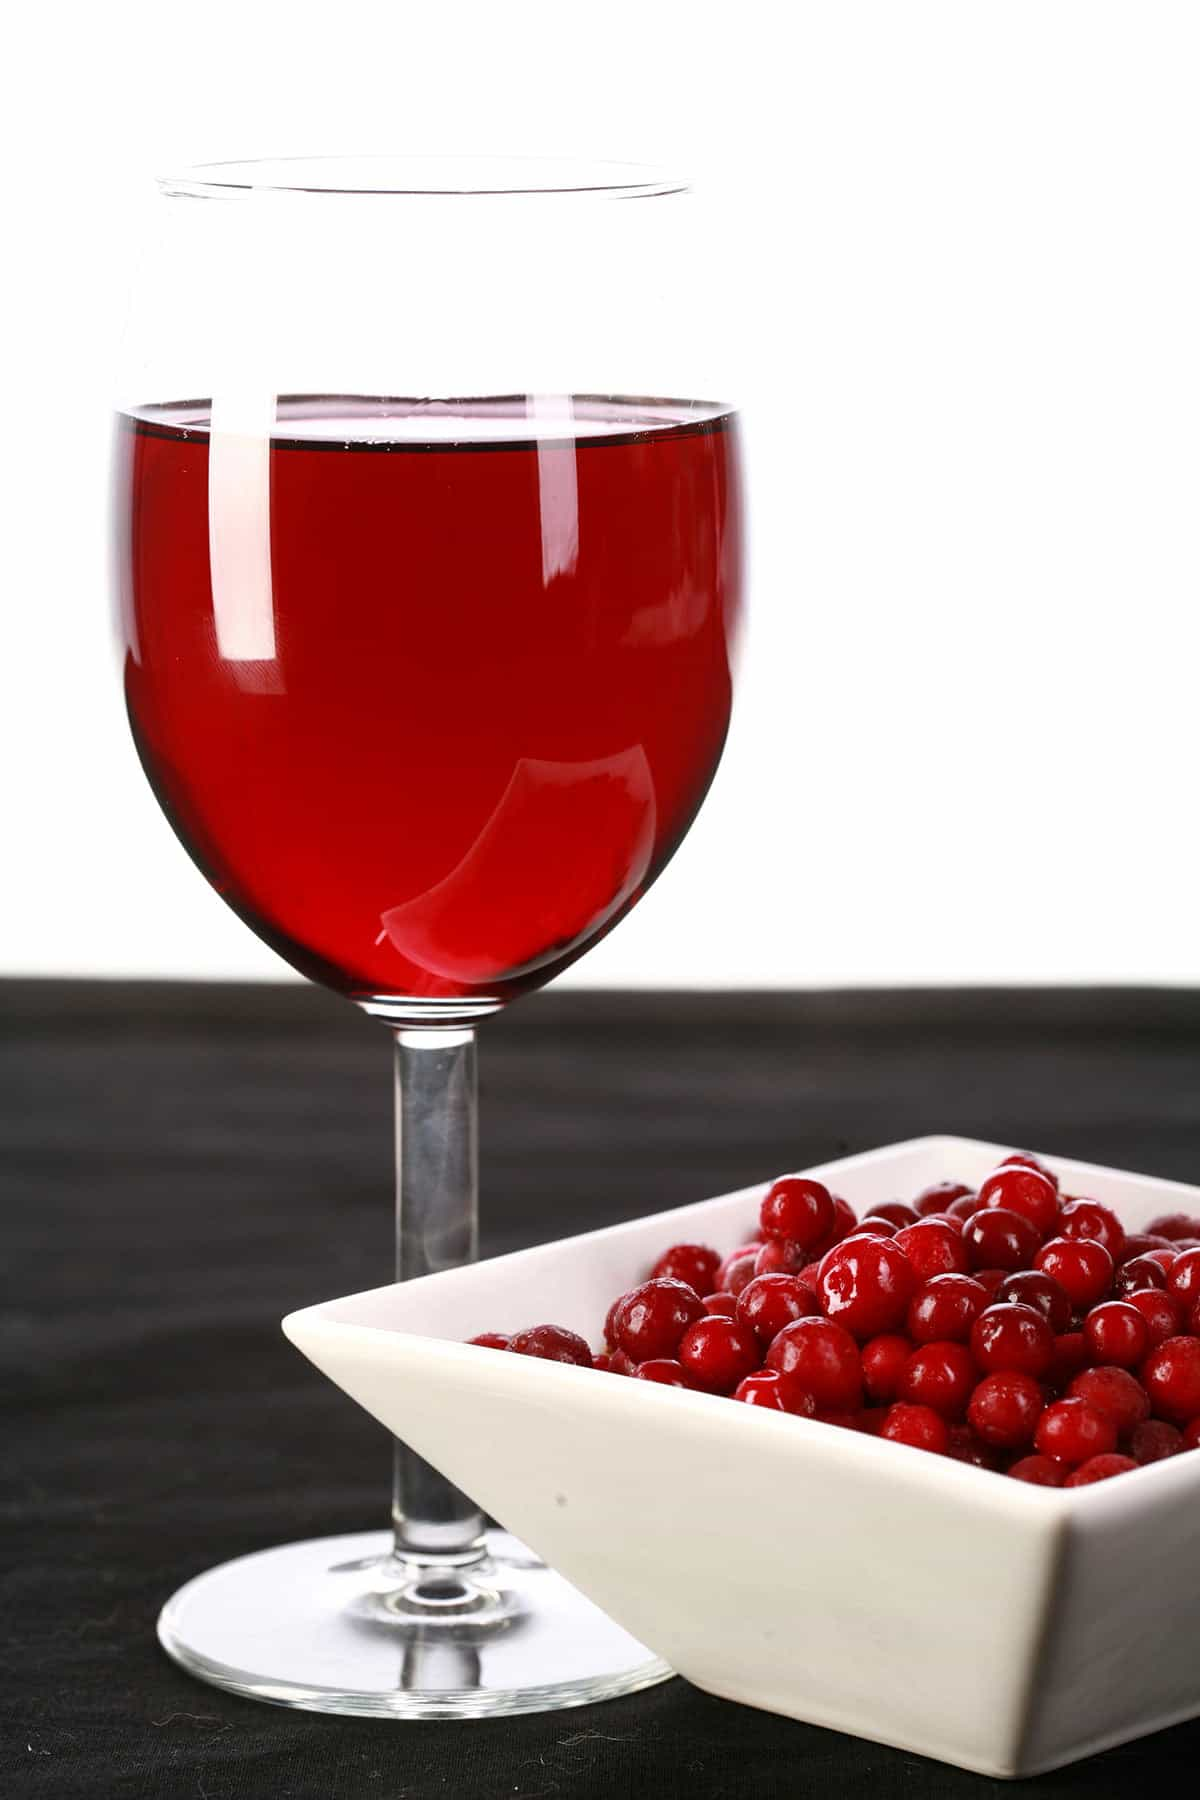 A glass of red wine - made from this lingonberry wine recipe - is pictured next to a small bowl of lingonberries.